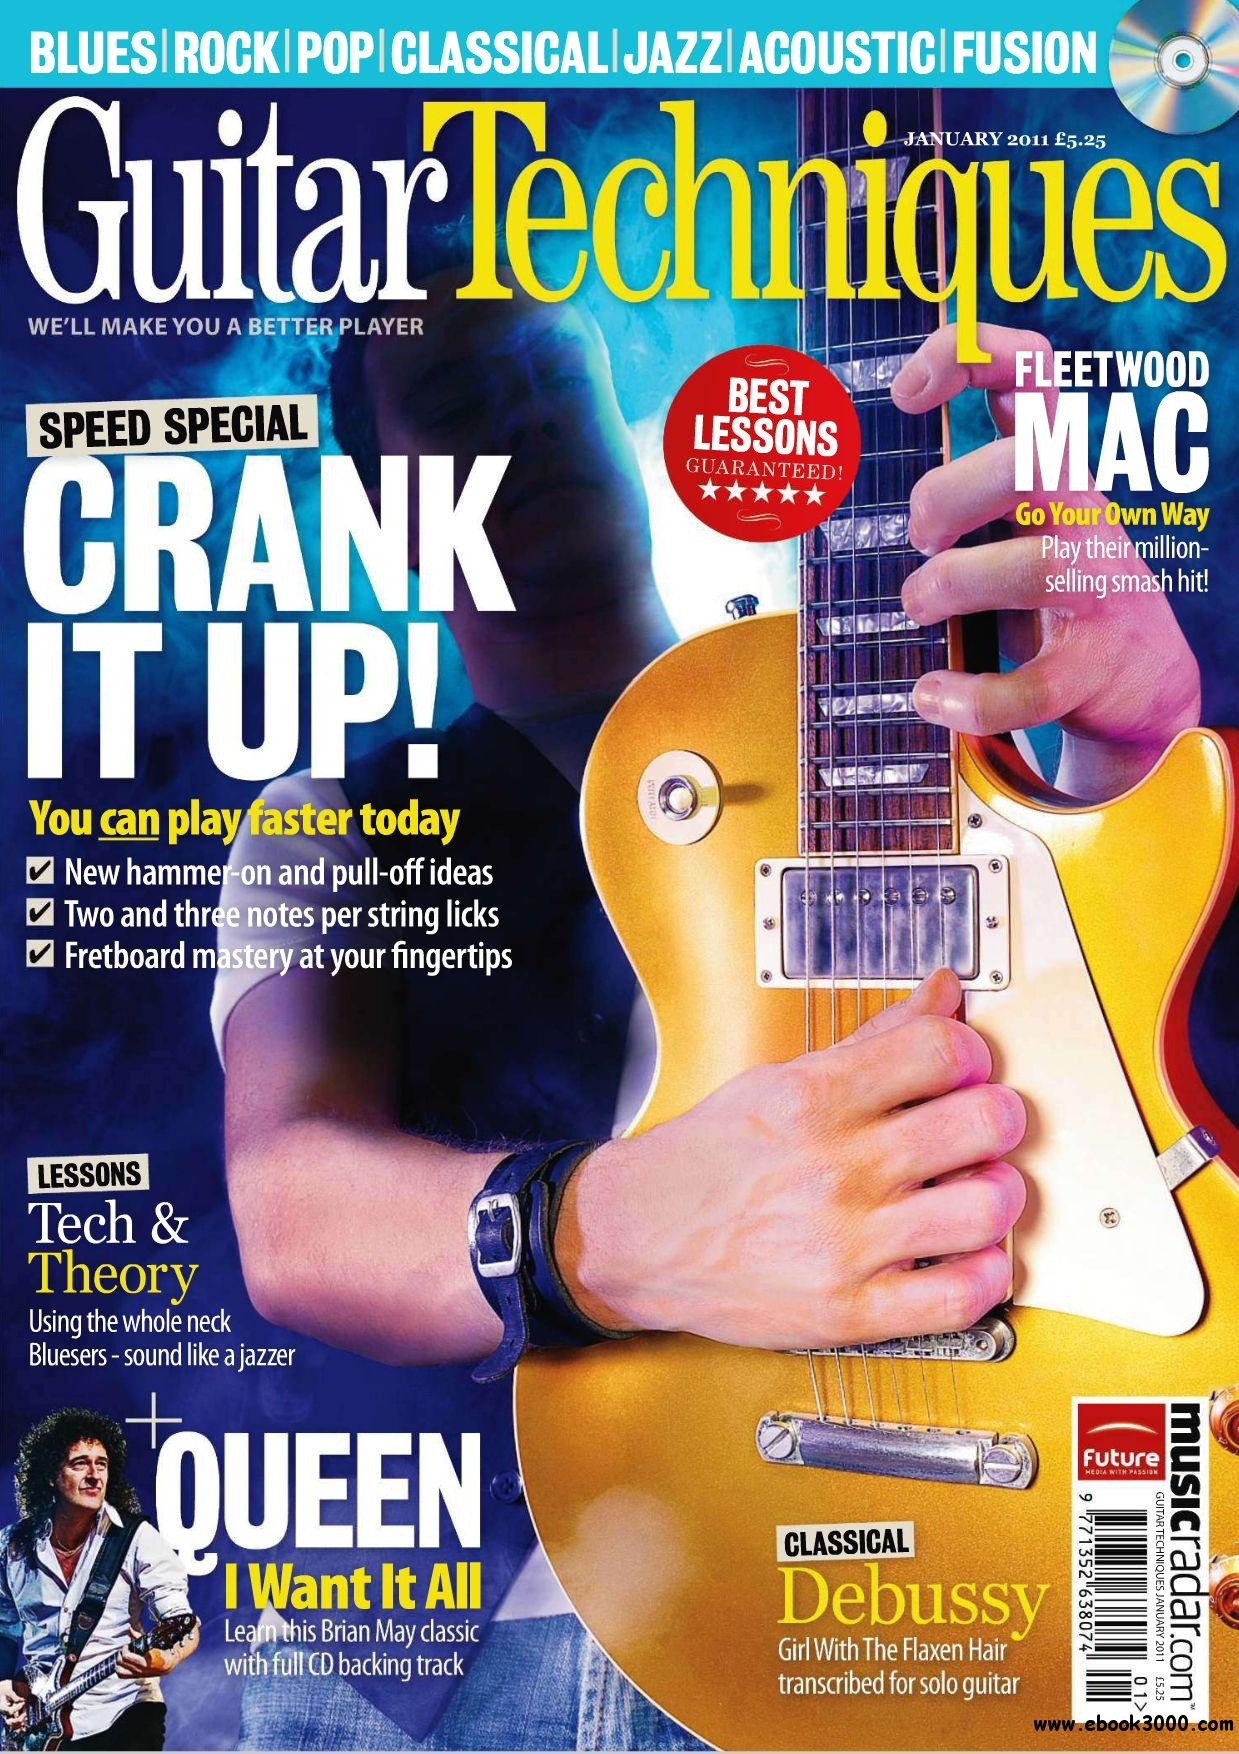 Guitar Techniques C No186 January 2011 free download